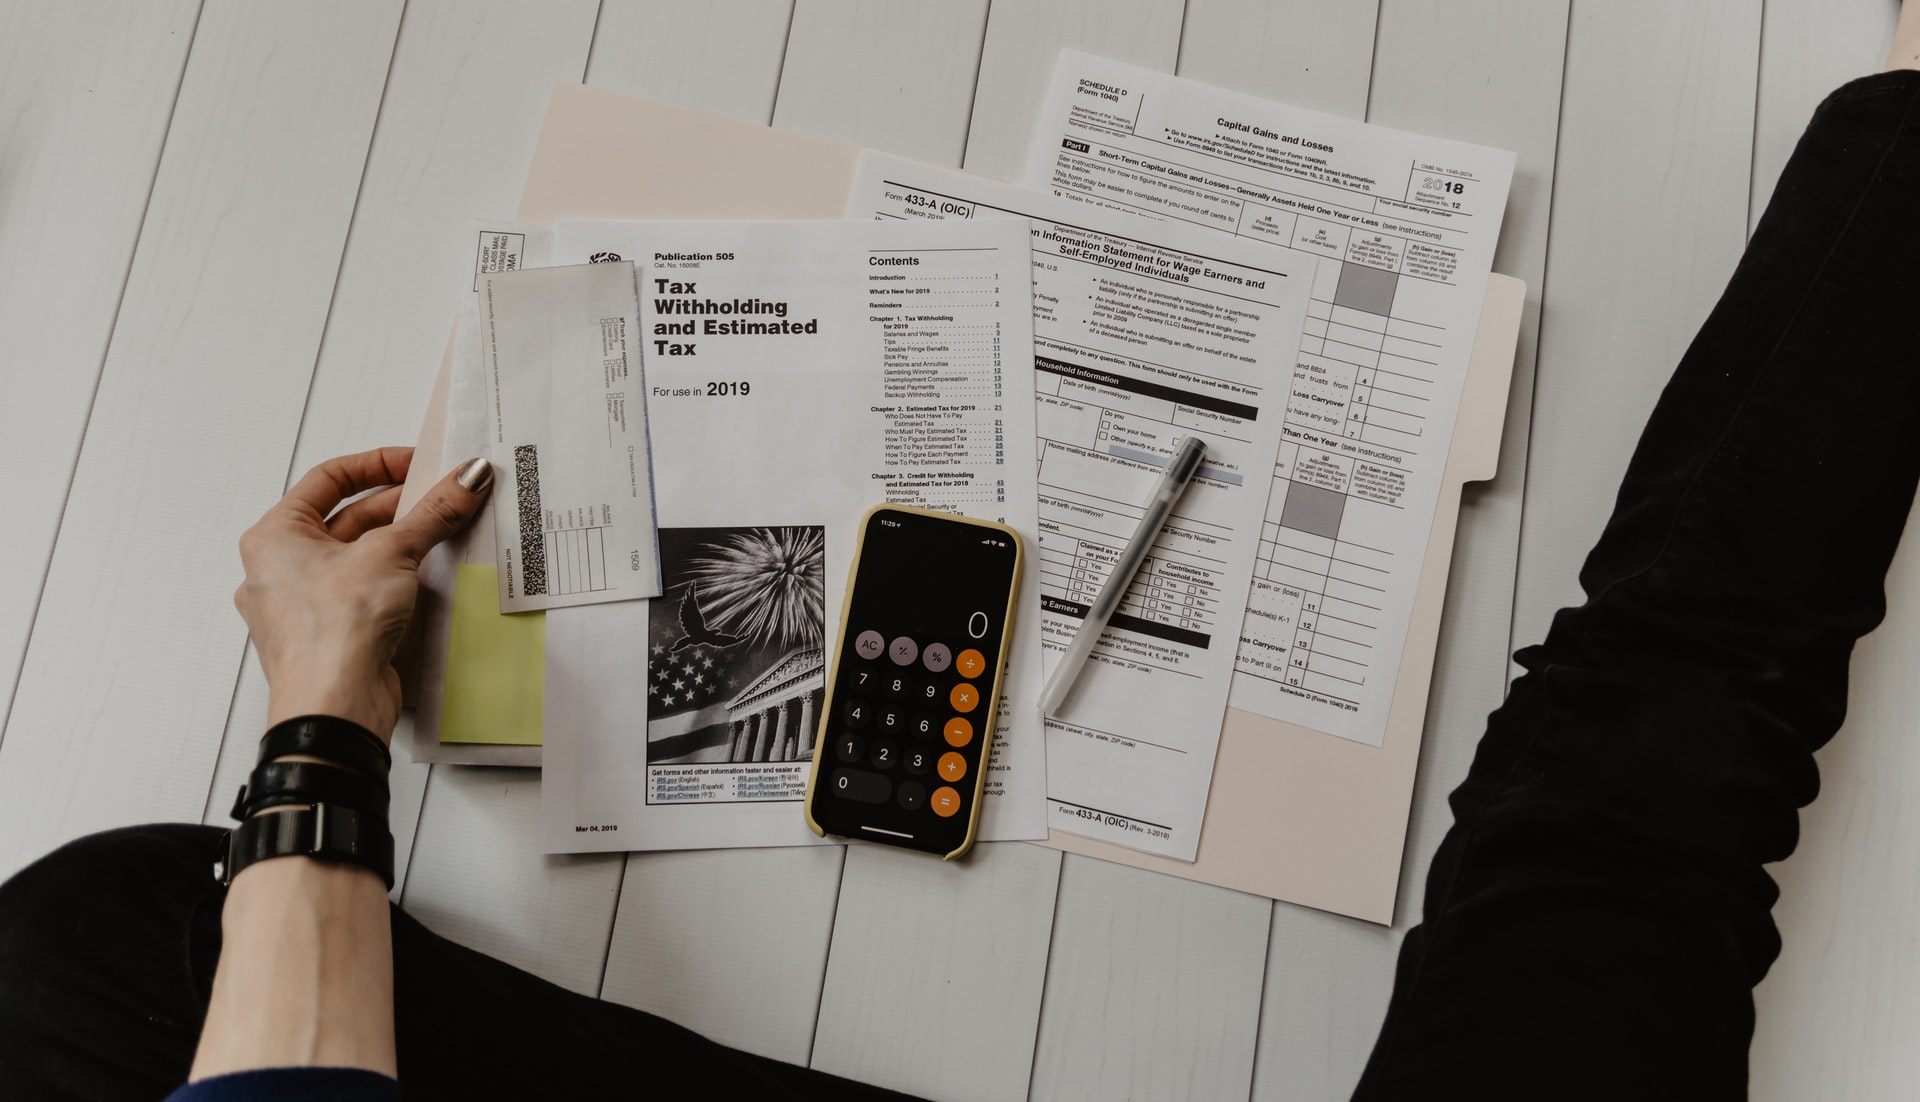 5 Reasons Why You Can't Stick to Your Budget and How to Fix It